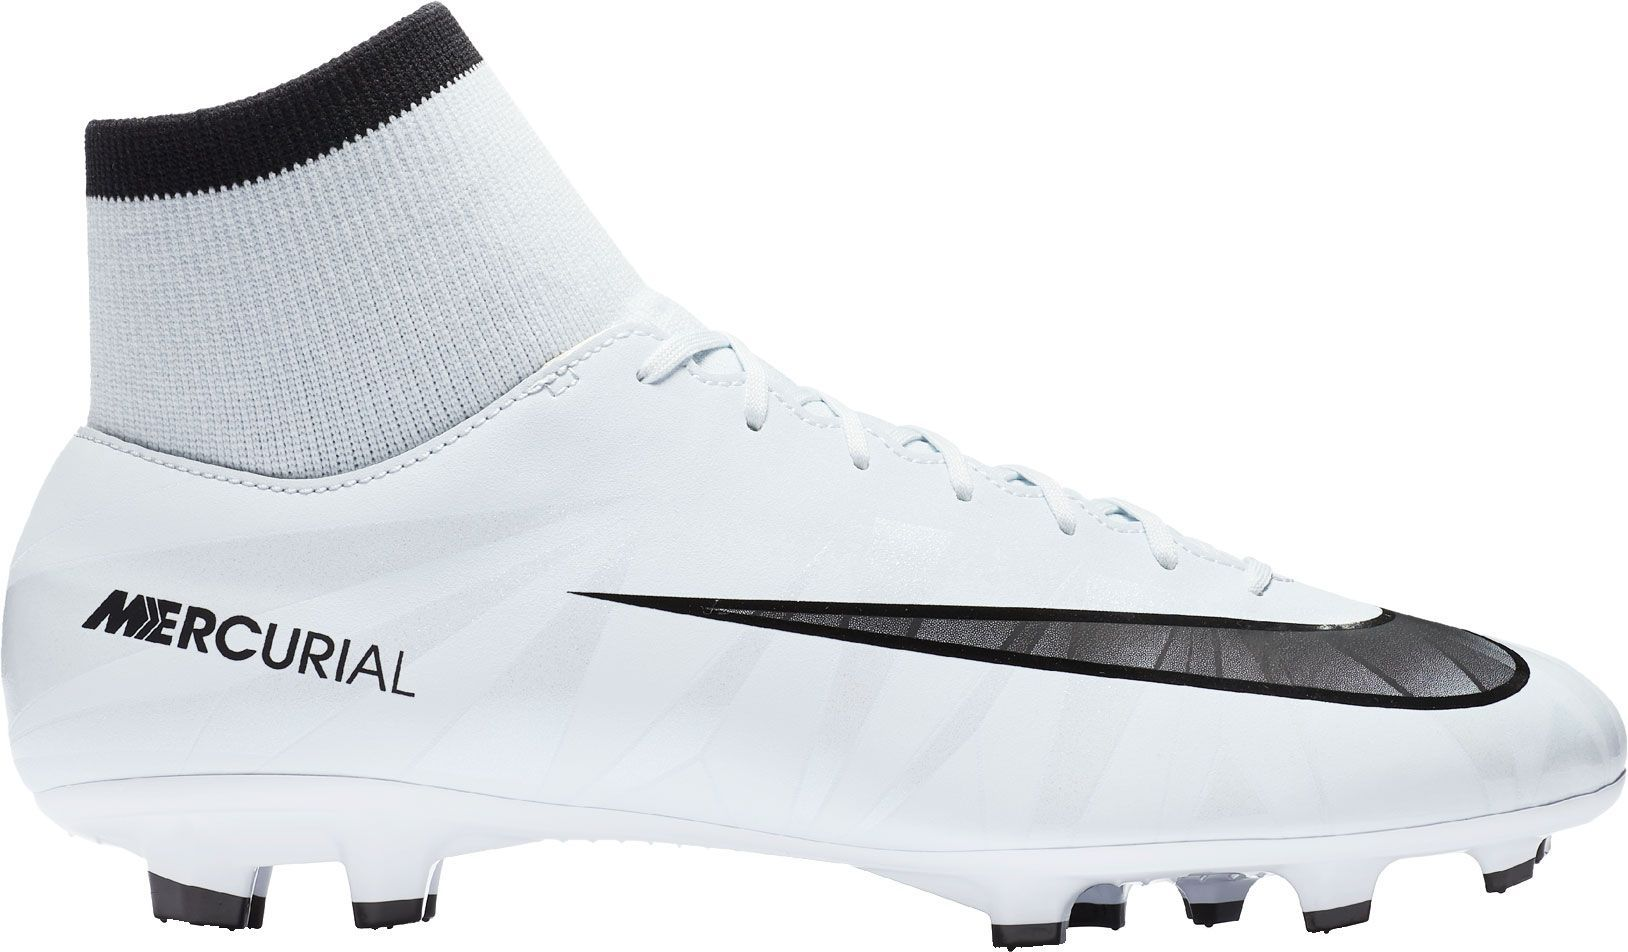 new products 1491c de1c5 Nike Mercurial Victory VI CR7 Dynamic Fit FG Soccer Cleats ...